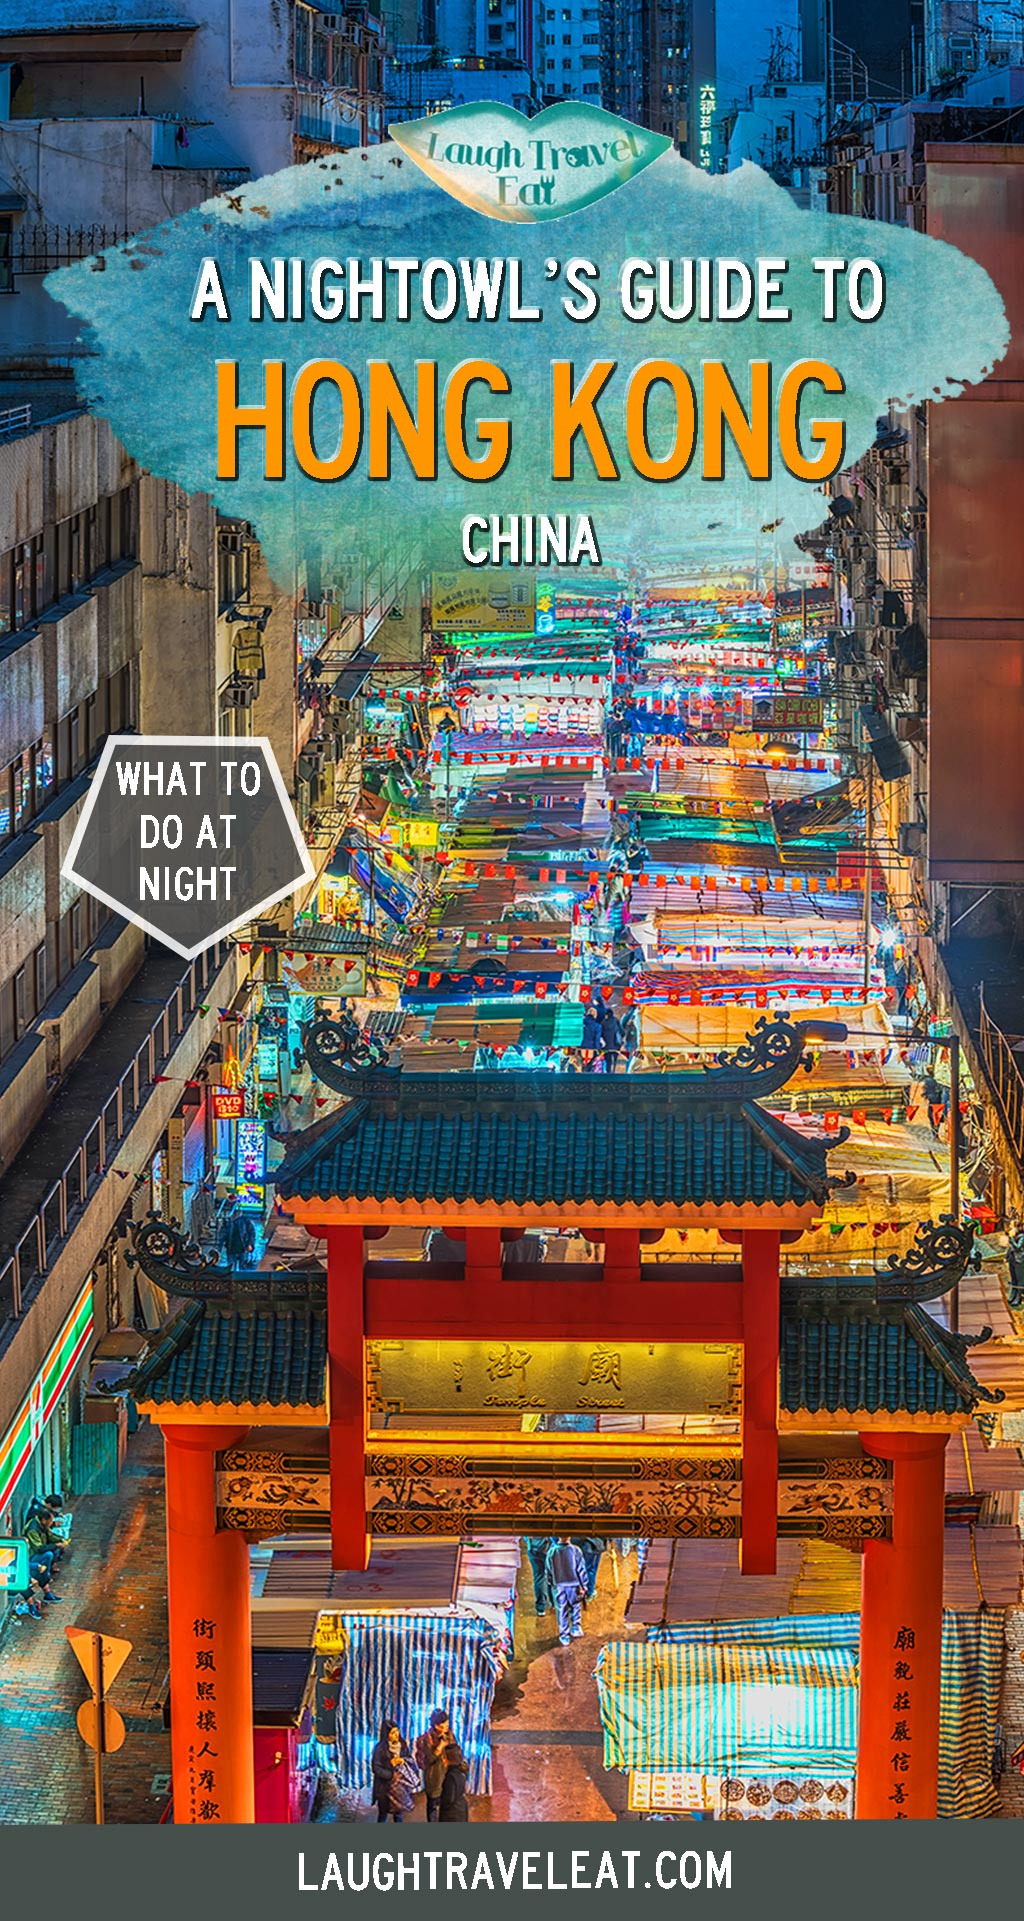 Hong Kong is famous for being a busy city so it should be no surprise that there are plenty to do at night. In fact, almost everything opens late and closes late, if not throughout the night. Whether you are looking to party it up or to venture out after the temperature has cool down, here are some top things to do at night in Hong Kong: #HongKong